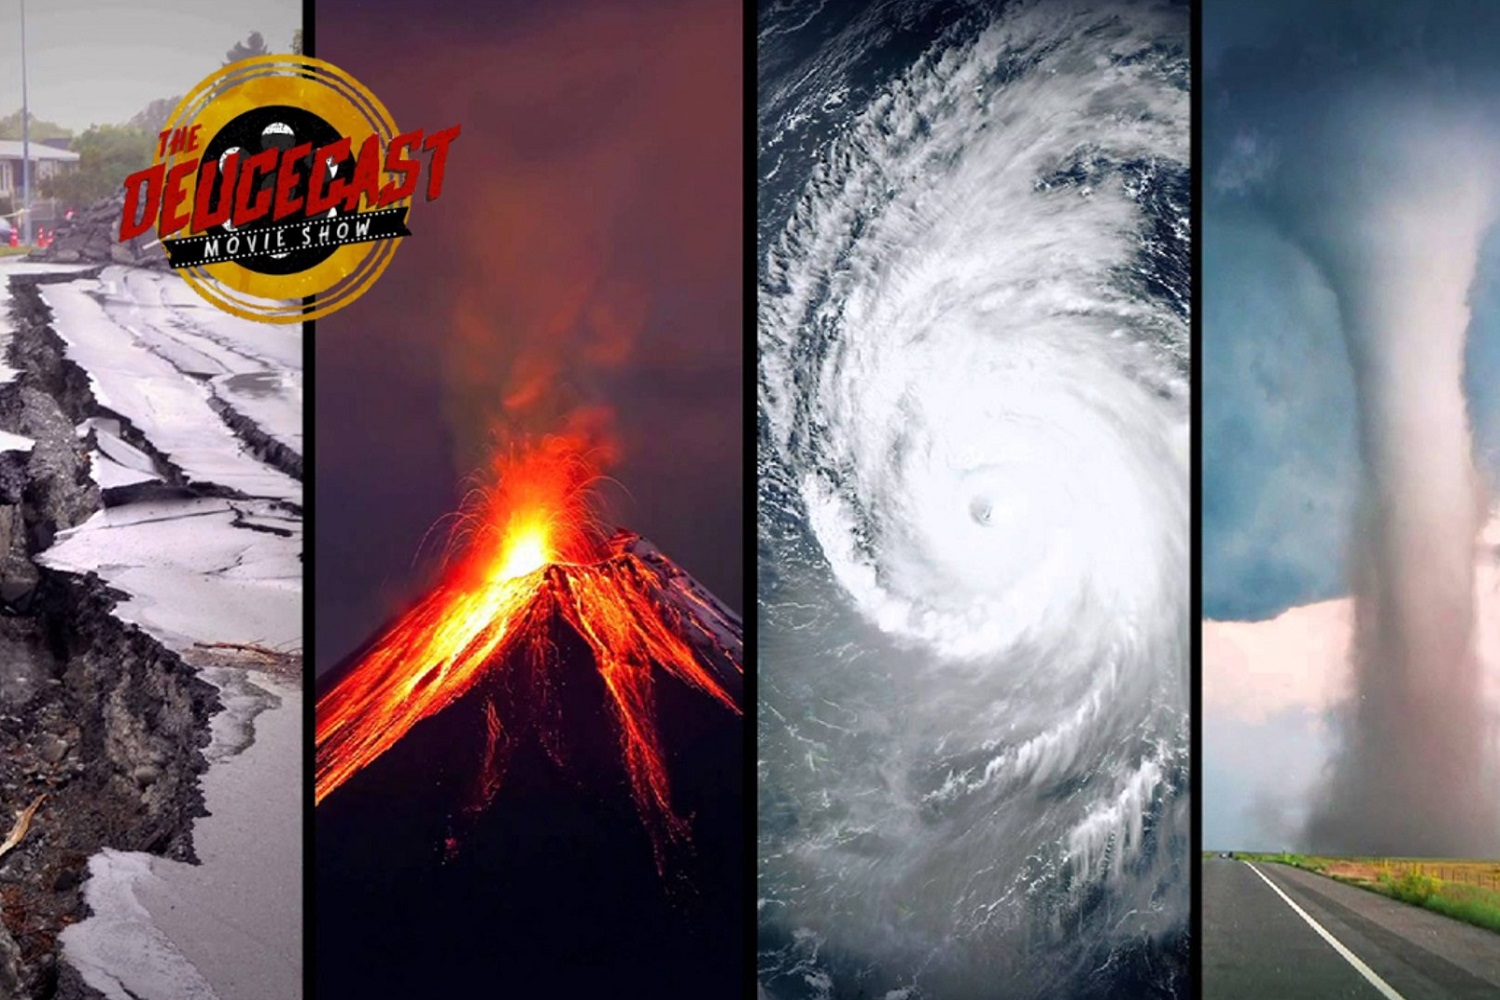 The Deucecast Movie Show #472: Natural Disaster Movies